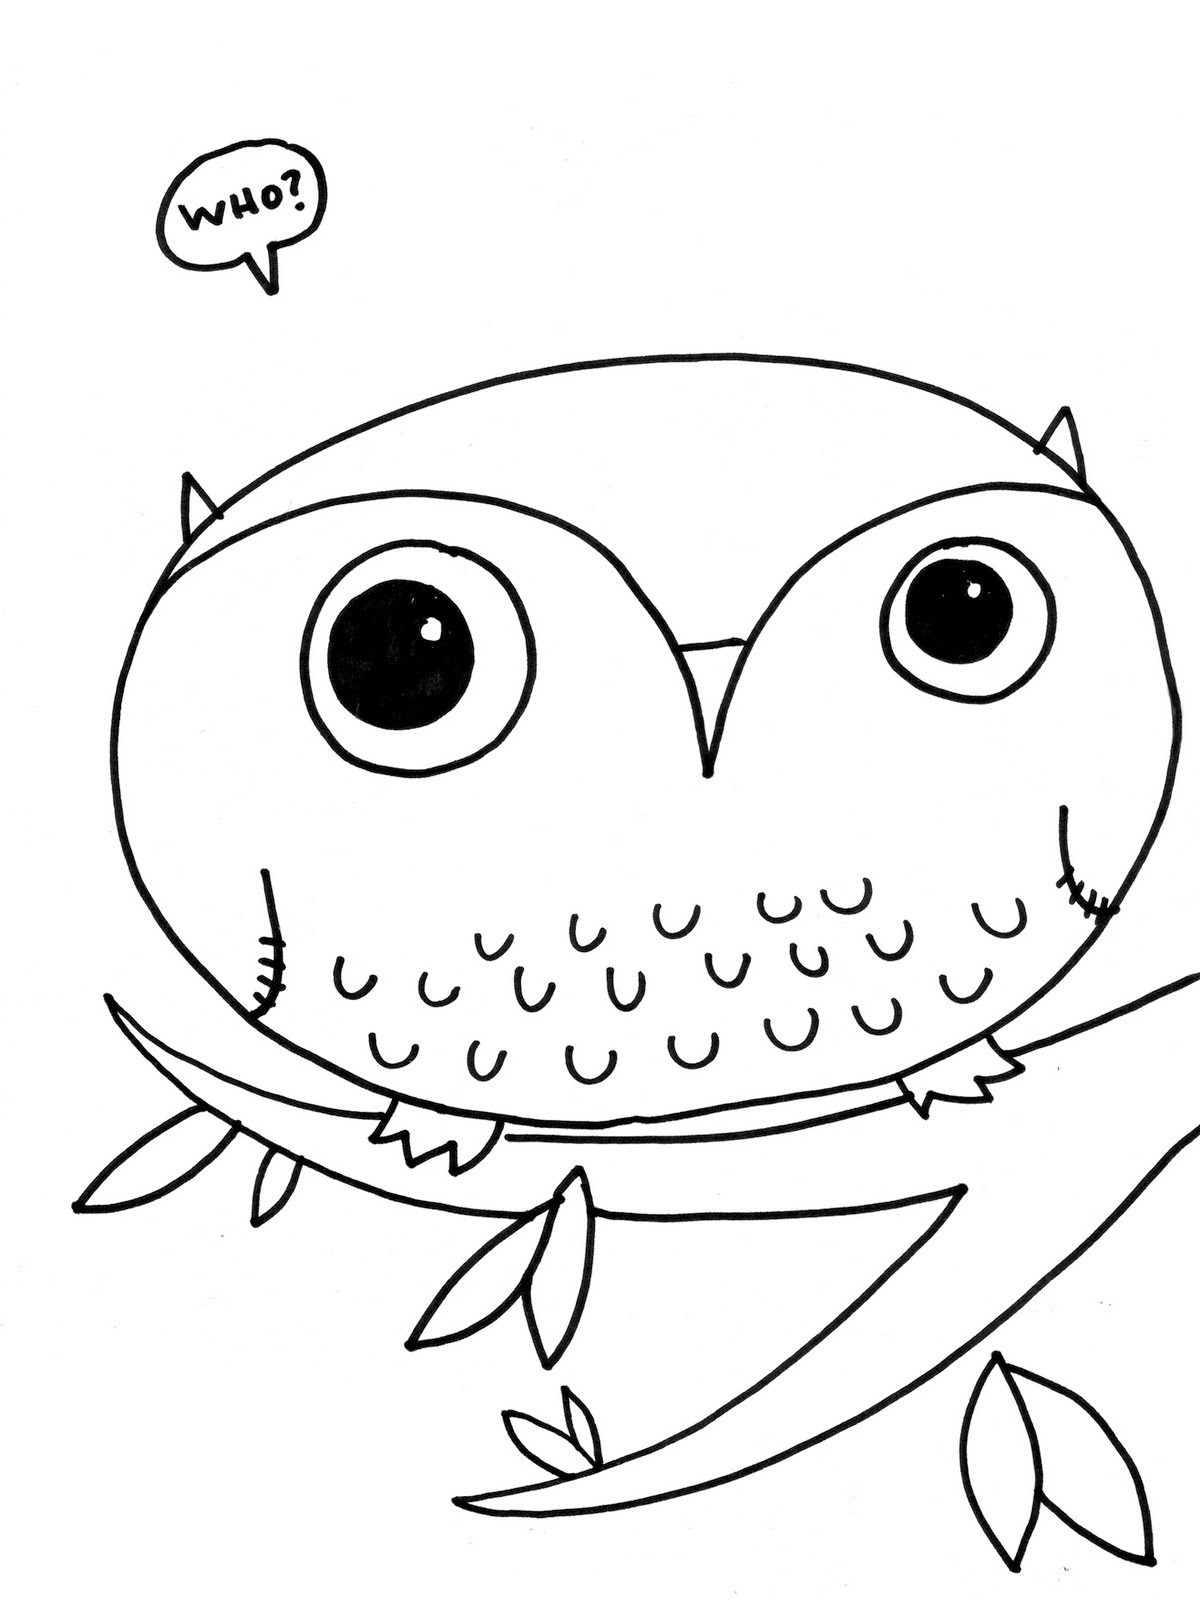 cute coloring pages of owls easy cute owl drawing at getdrawings free download pages coloring cute owls of